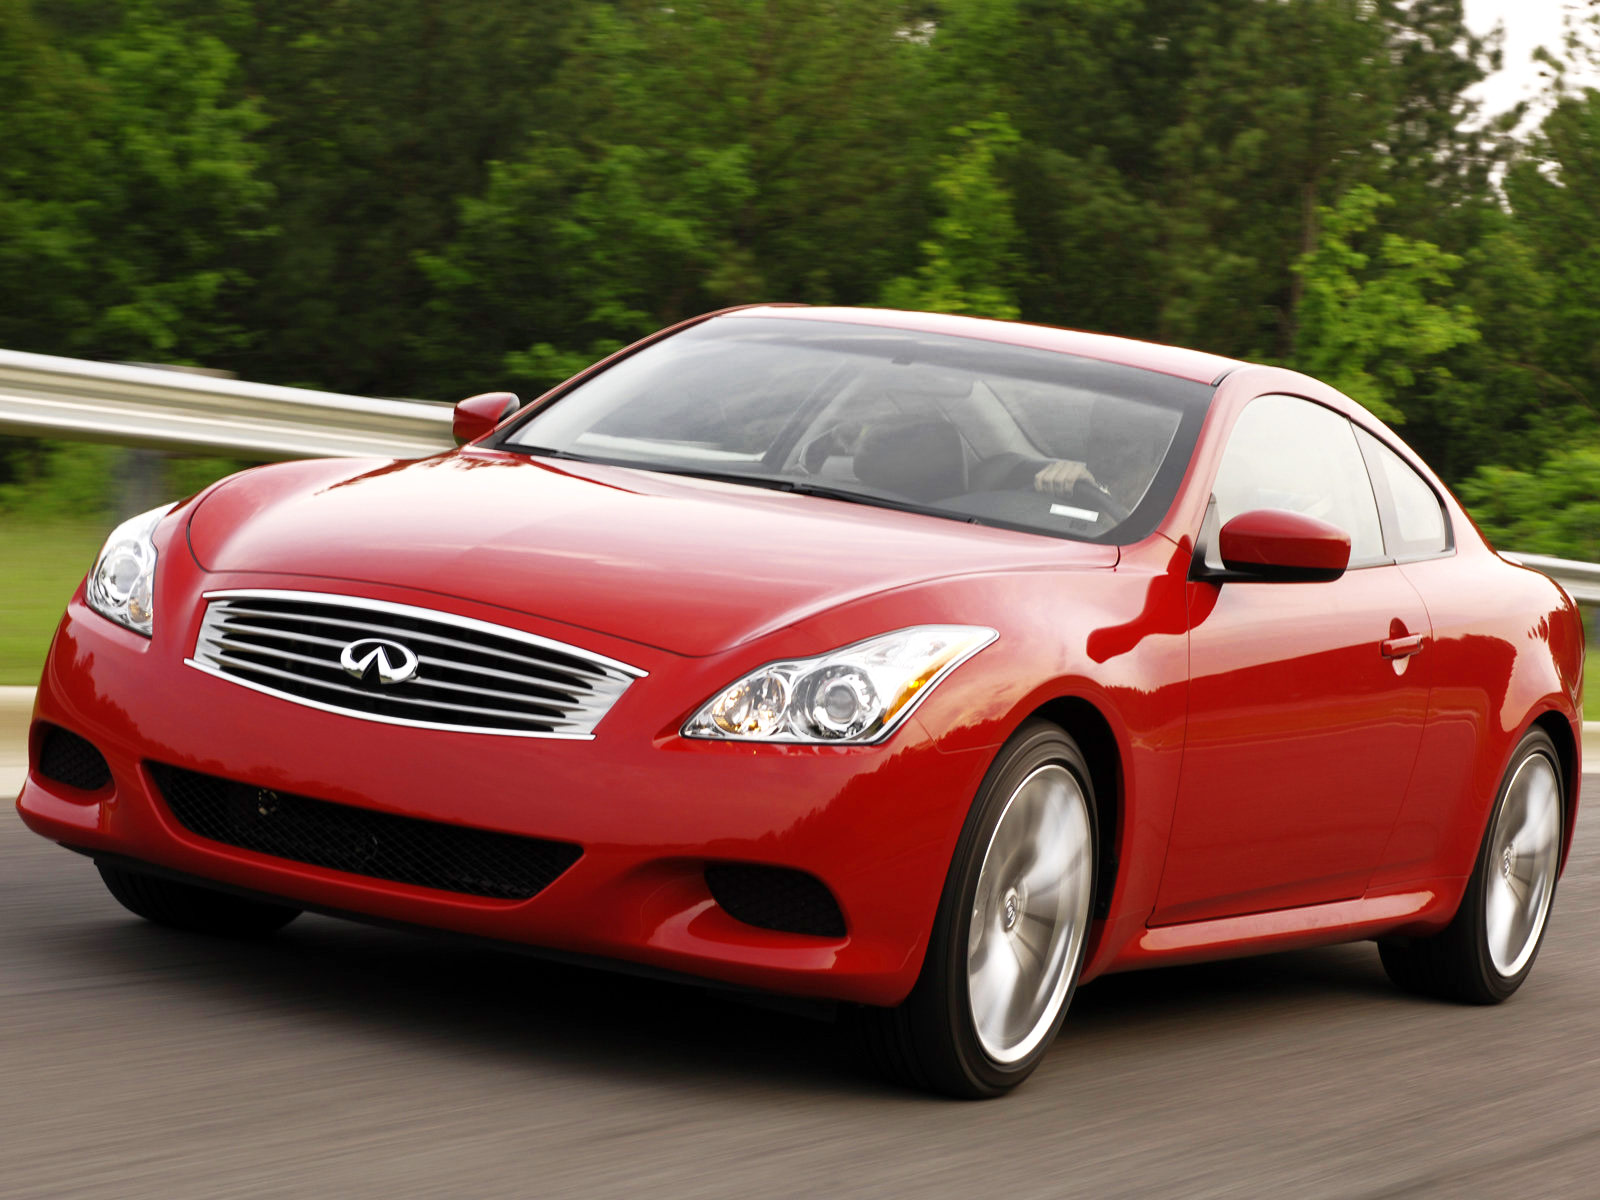 infiniti g37 coupe car pictures 2008 accident lawyers info. Black Bedroom Furniture Sets. Home Design Ideas